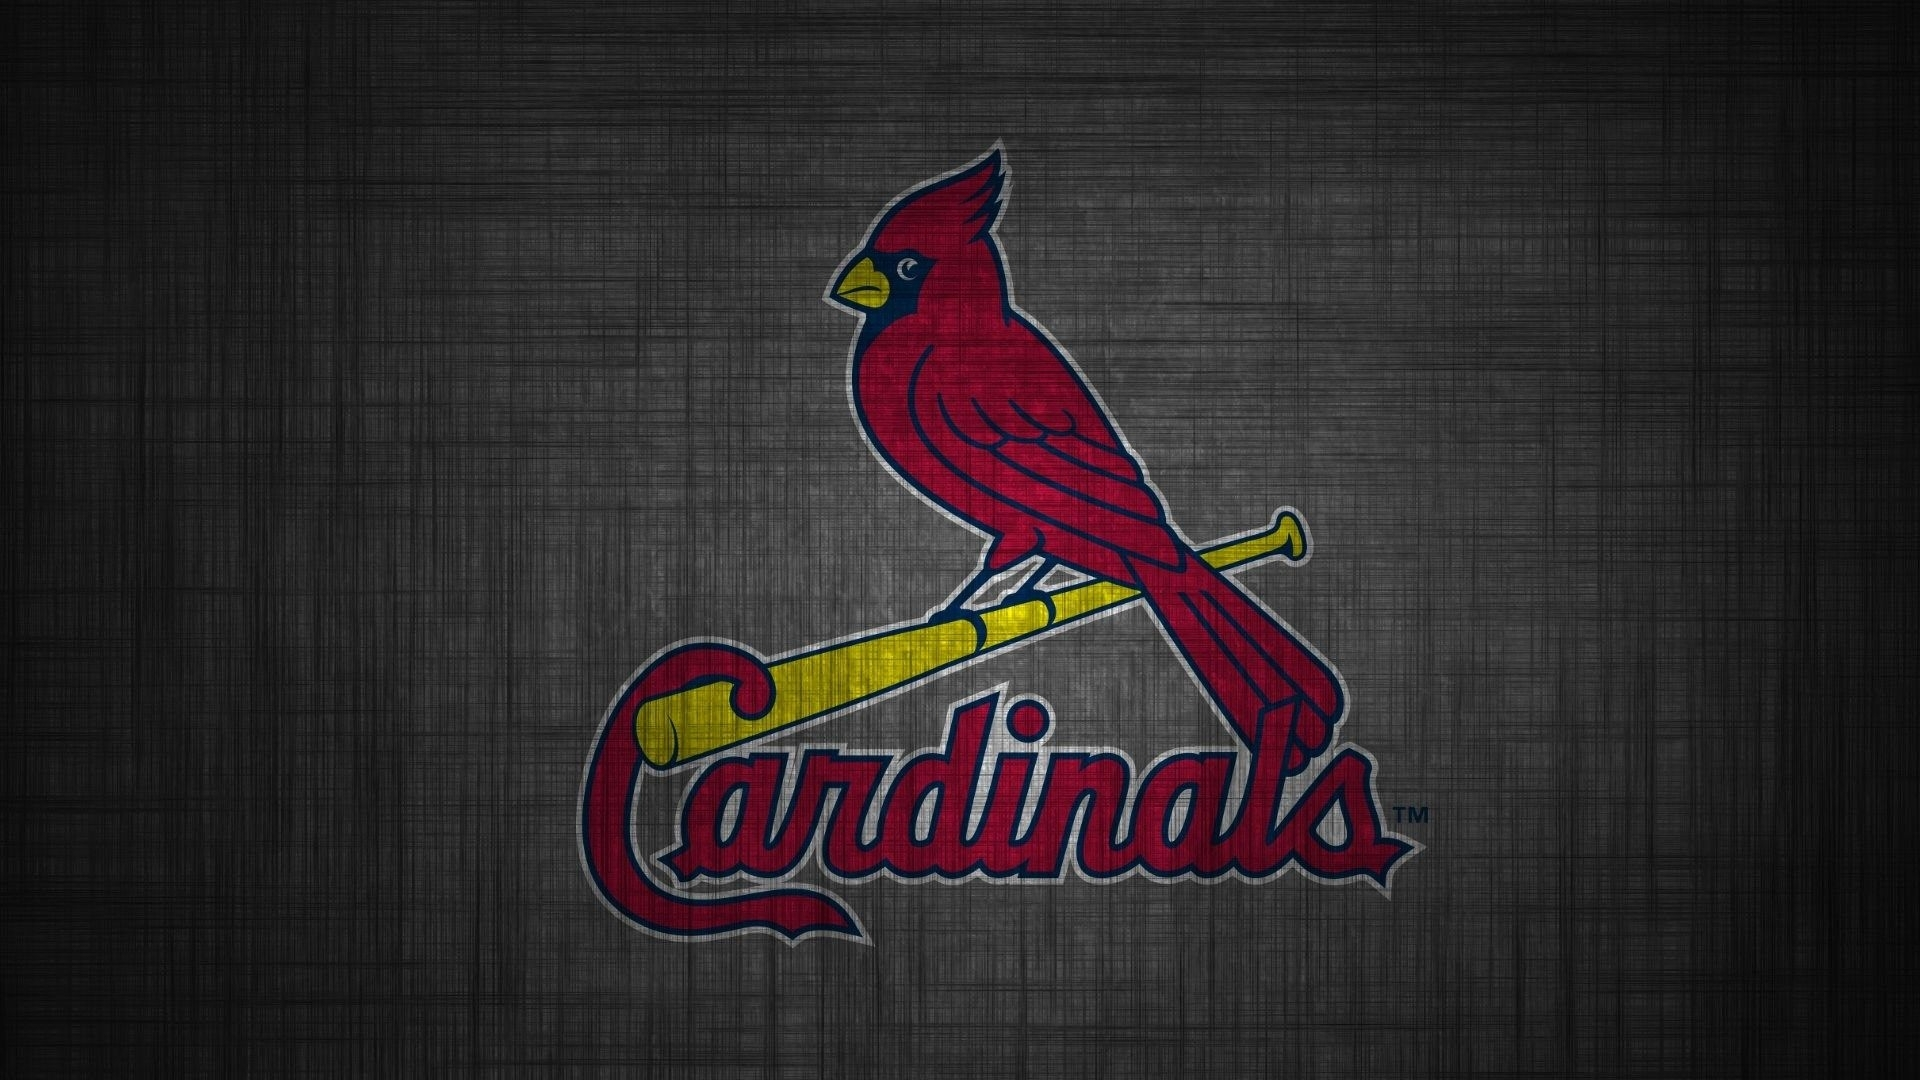 art images st louis cardinals logo backgrounds | sharovarka